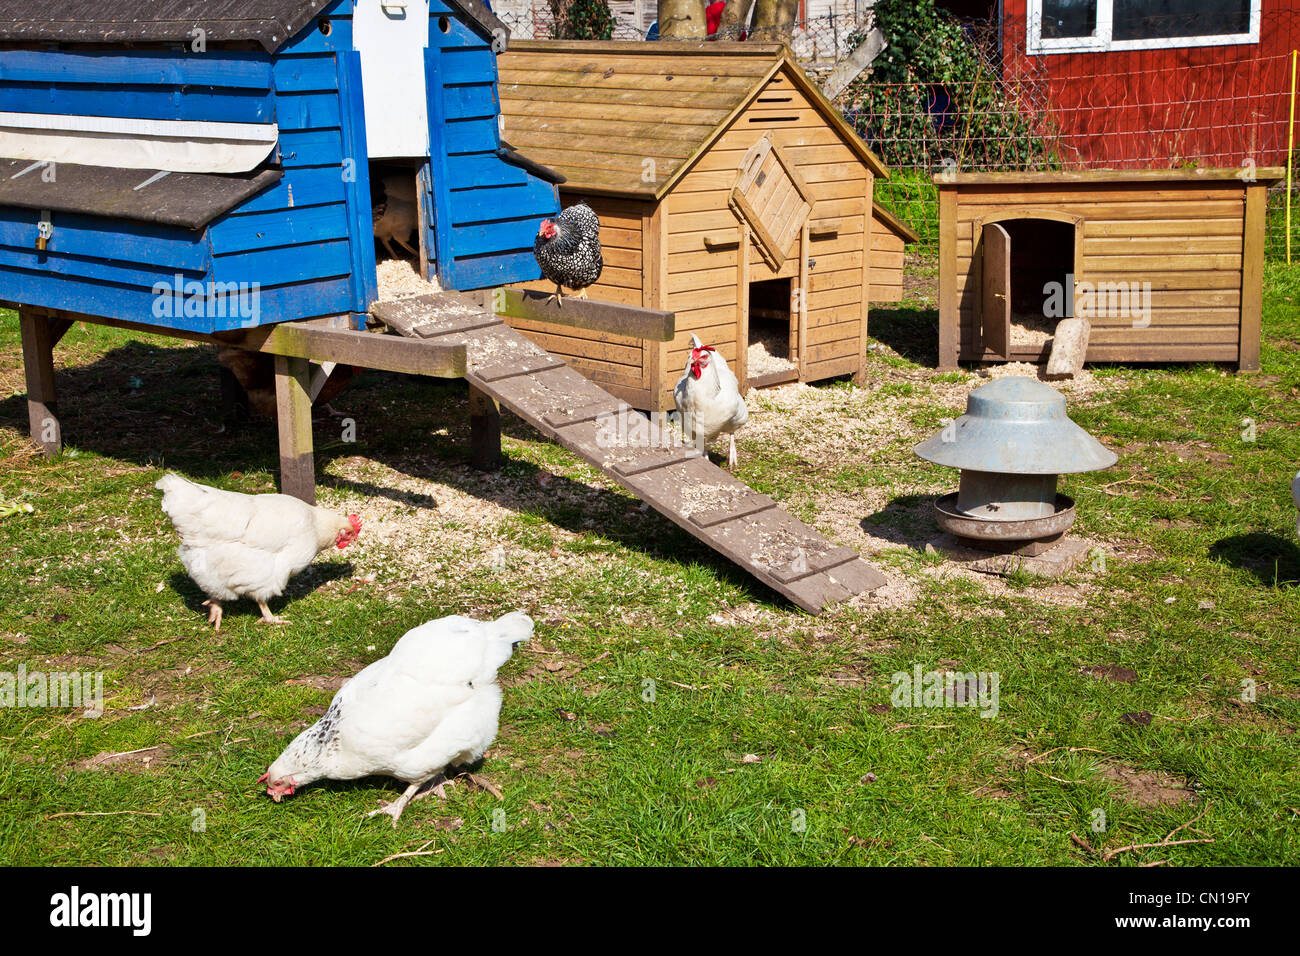 Free range chickens pecking around their hen coops on a smallholding in Wiltshire, England, UK - Stock Image